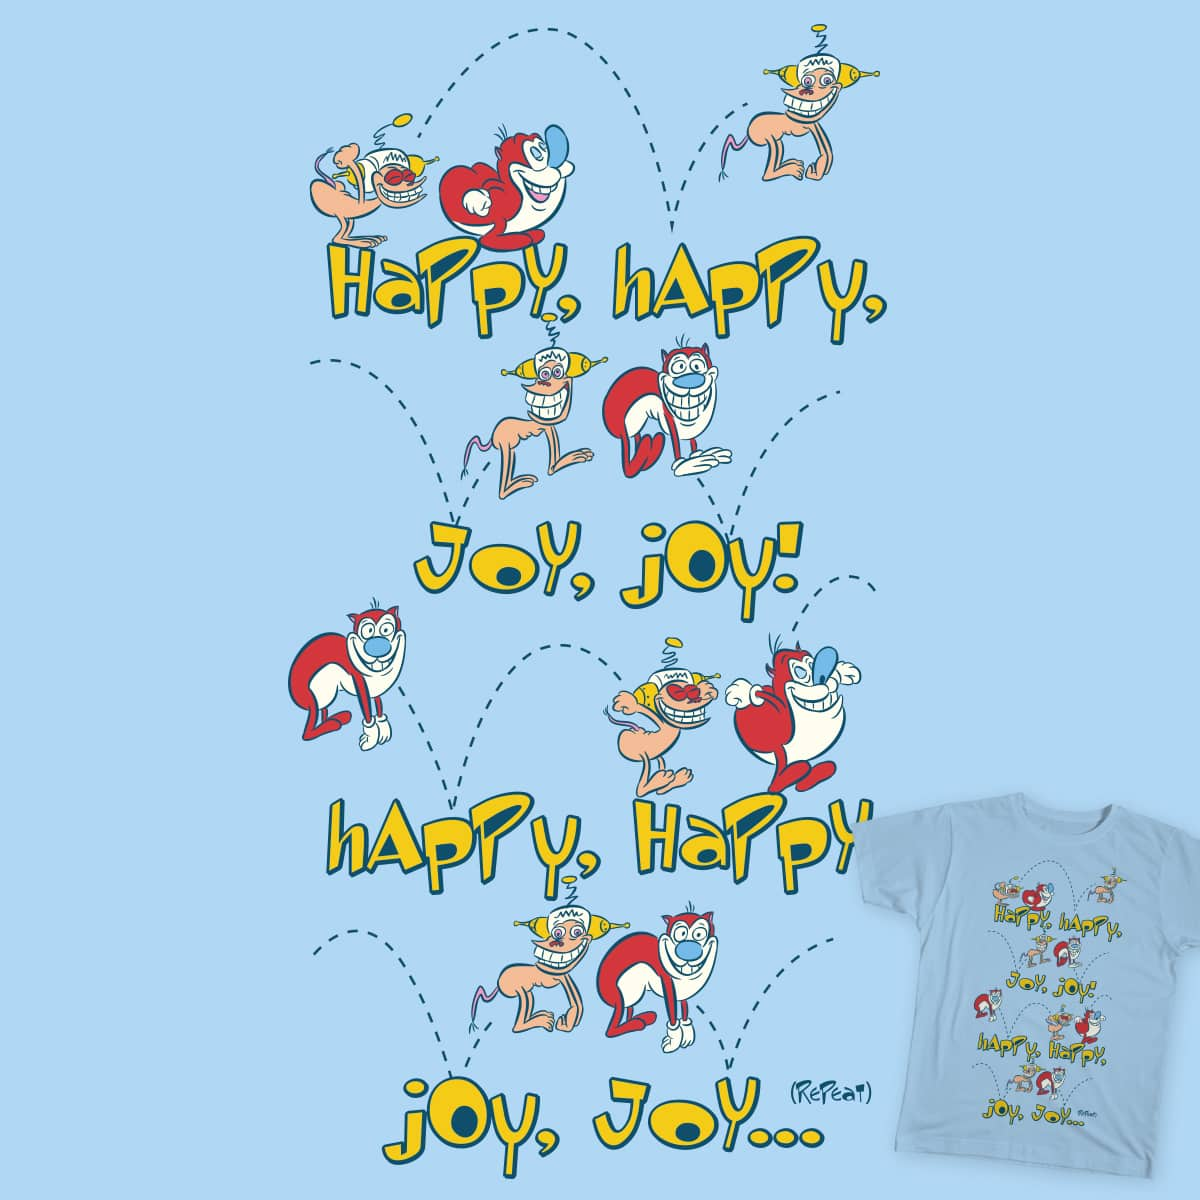 Happy Sing Along by cpdesign on Threadless